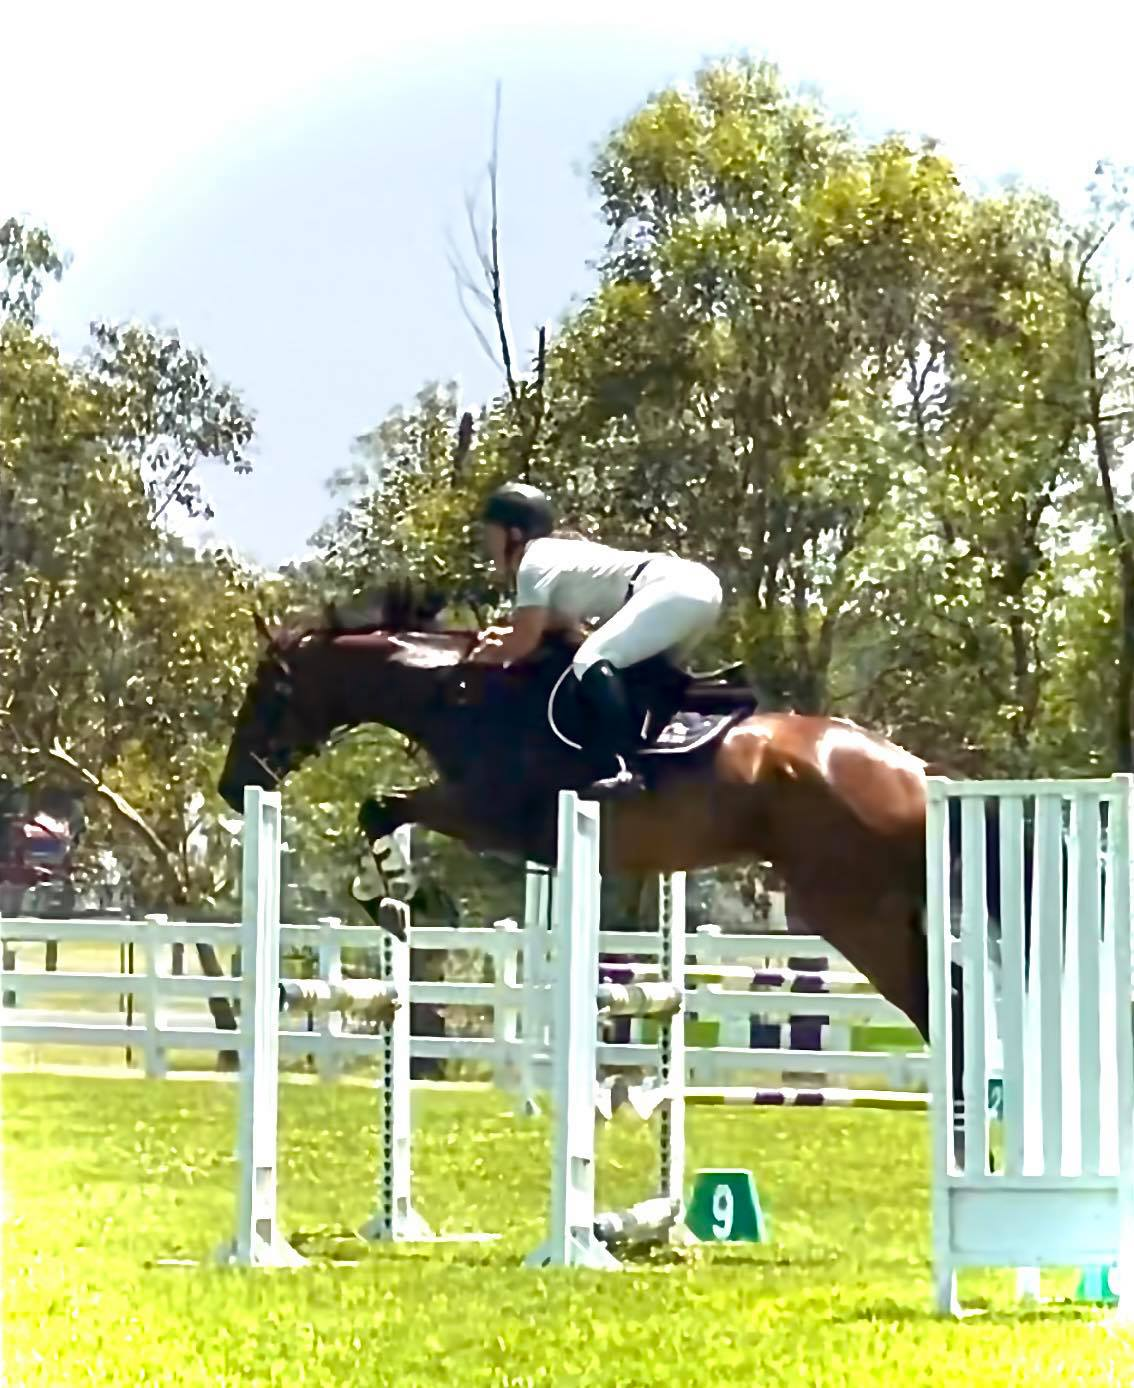 The Tic Toc Showjumping Team is on fire What a great day we had at the SSJC Sum - The Tic Toc Showjumping Team is on fire What a image